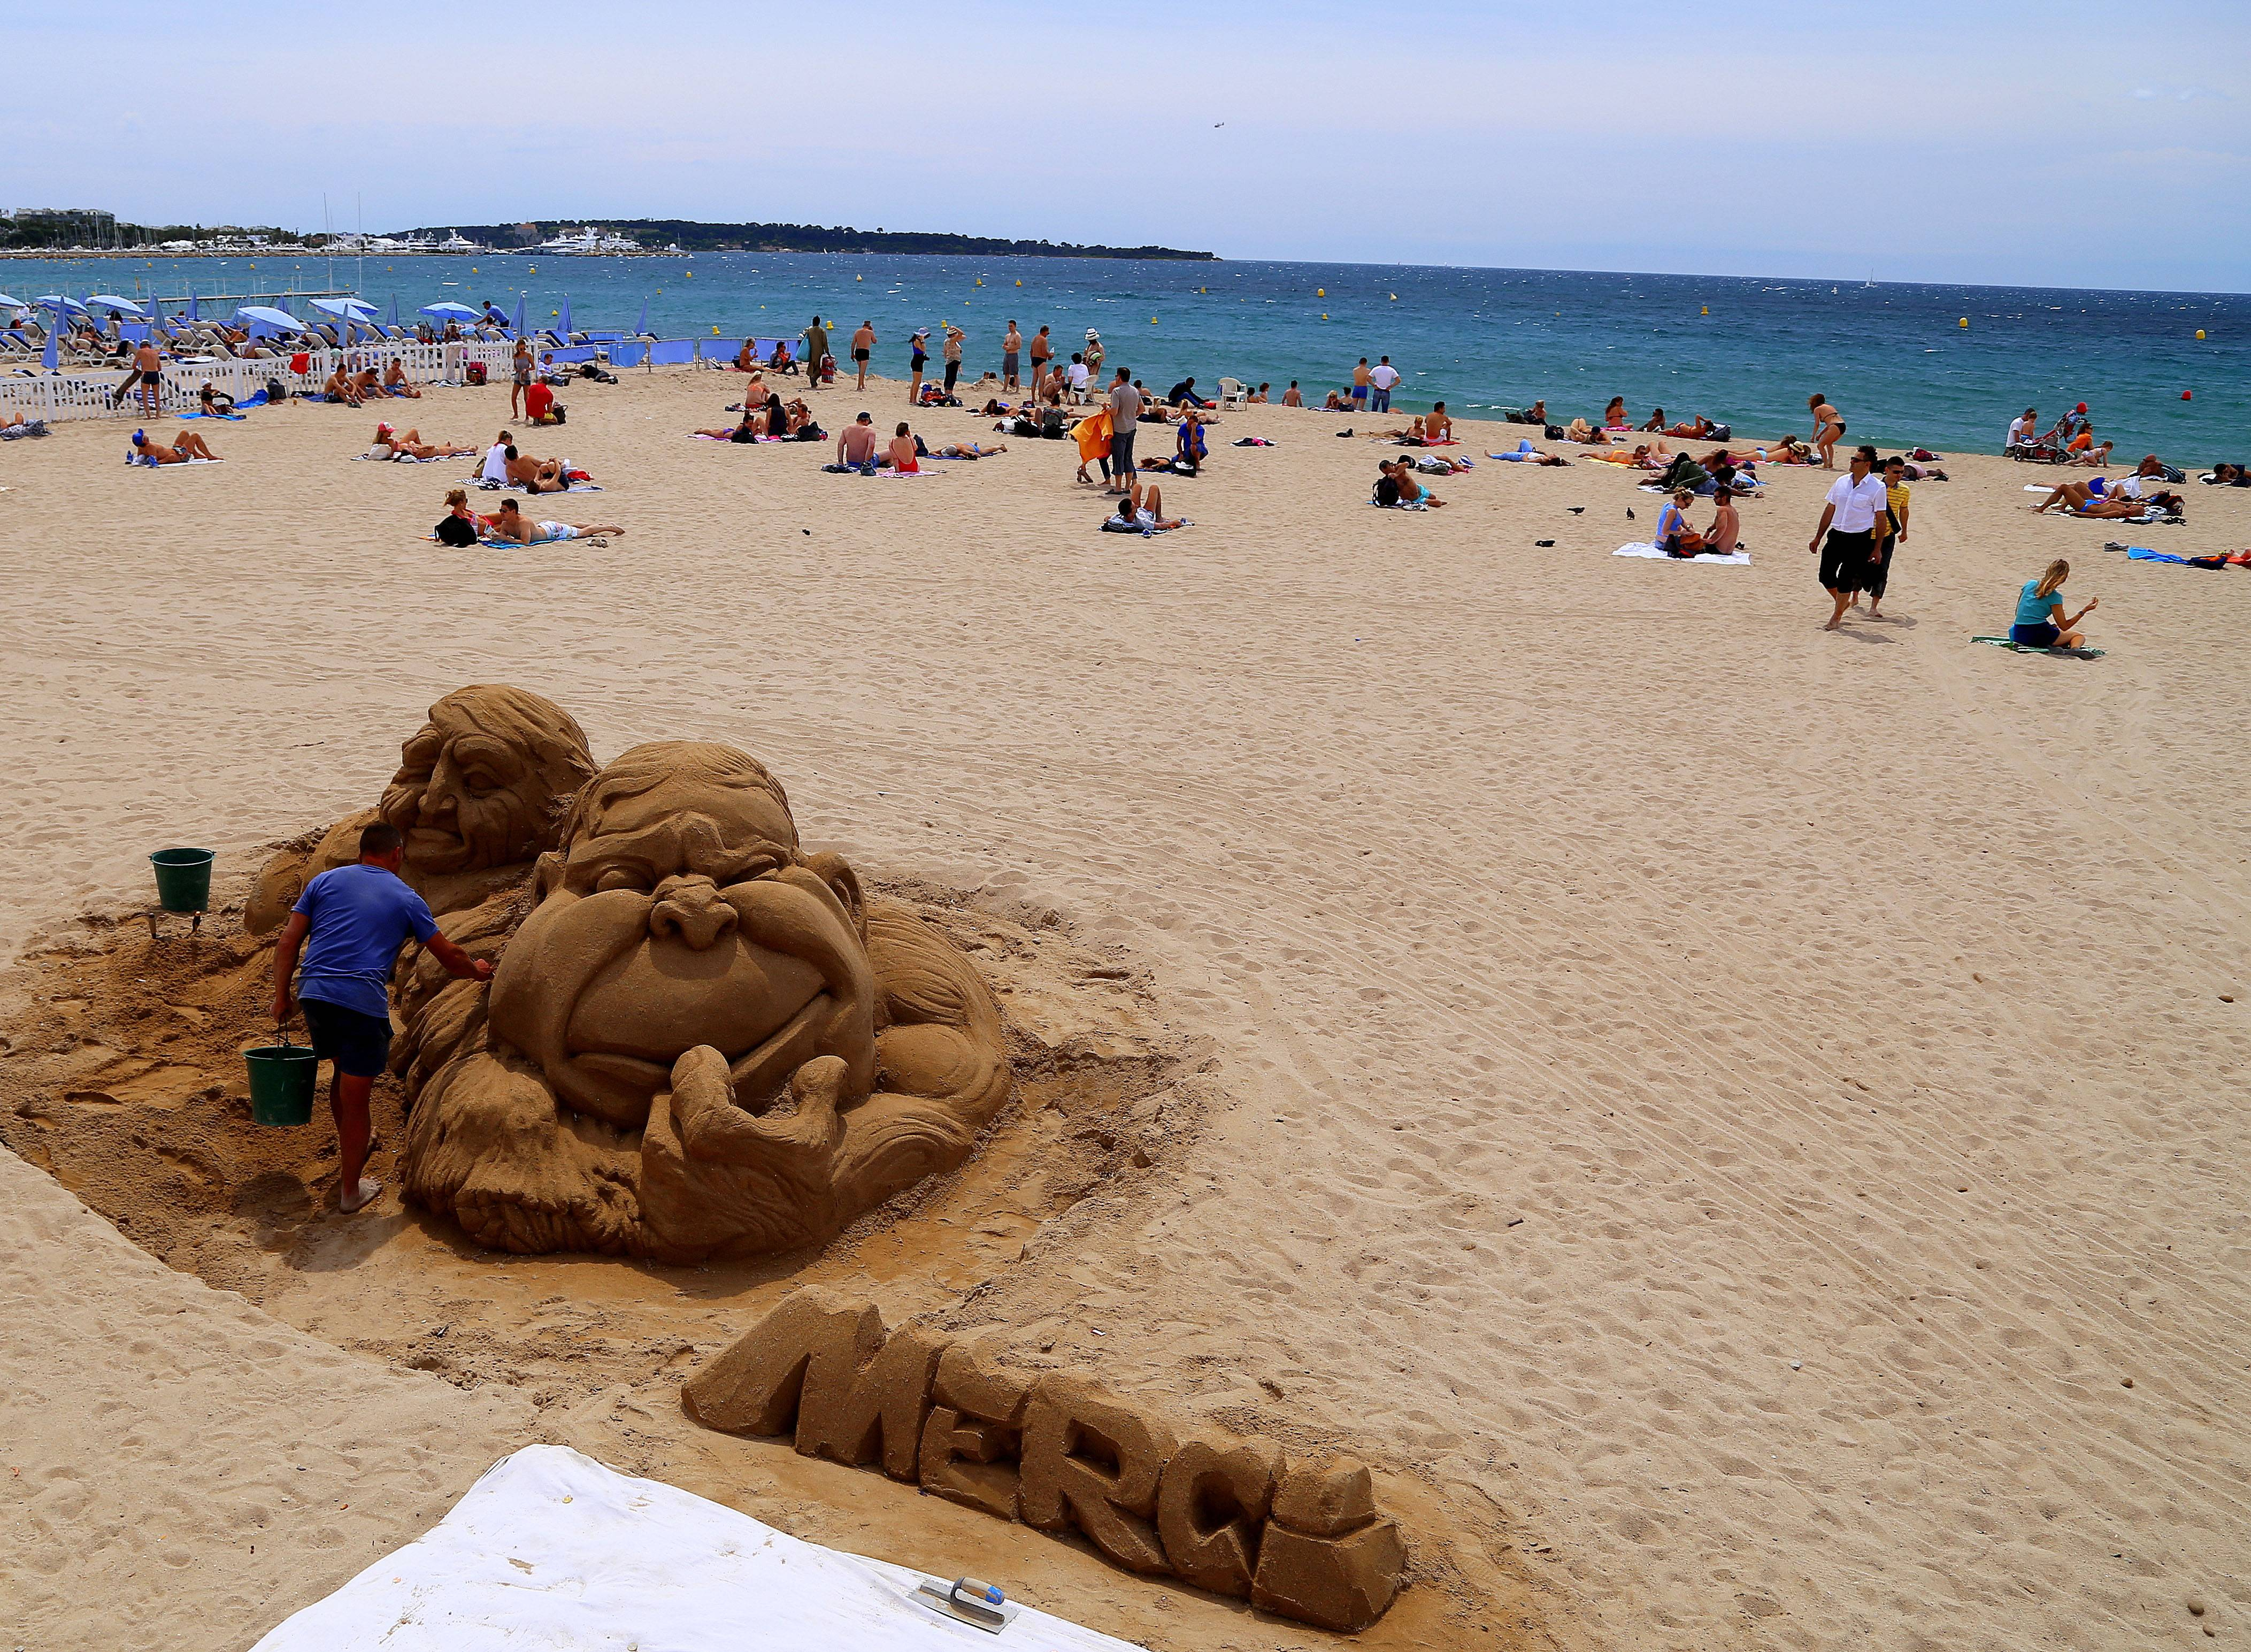 A man works on a sand sculpture on a free beach in Cannes, one of several free attractions in this Riviera resort. Cannes is a favorite destination for the wealthy, but the Riviera resort also offers plenty of simple, inexpensive pleasures, from the beach to street strolls.